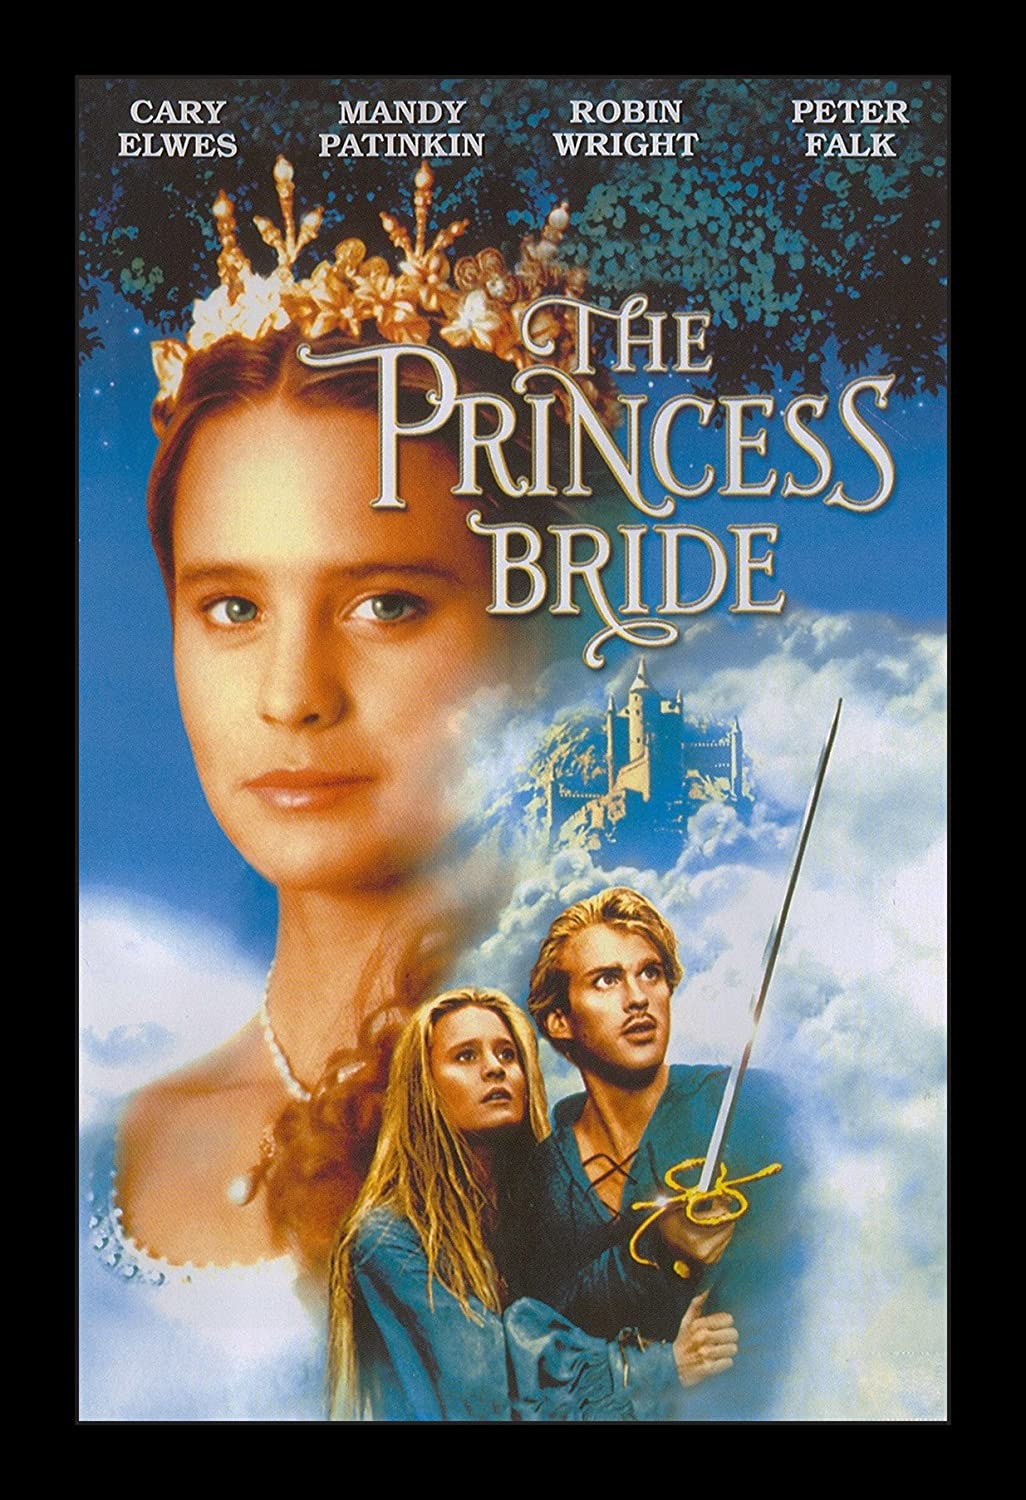 Amazon.com: Wallspace The Princess Bride - 11x17 Framed Movie Poster:  Posters & Prints